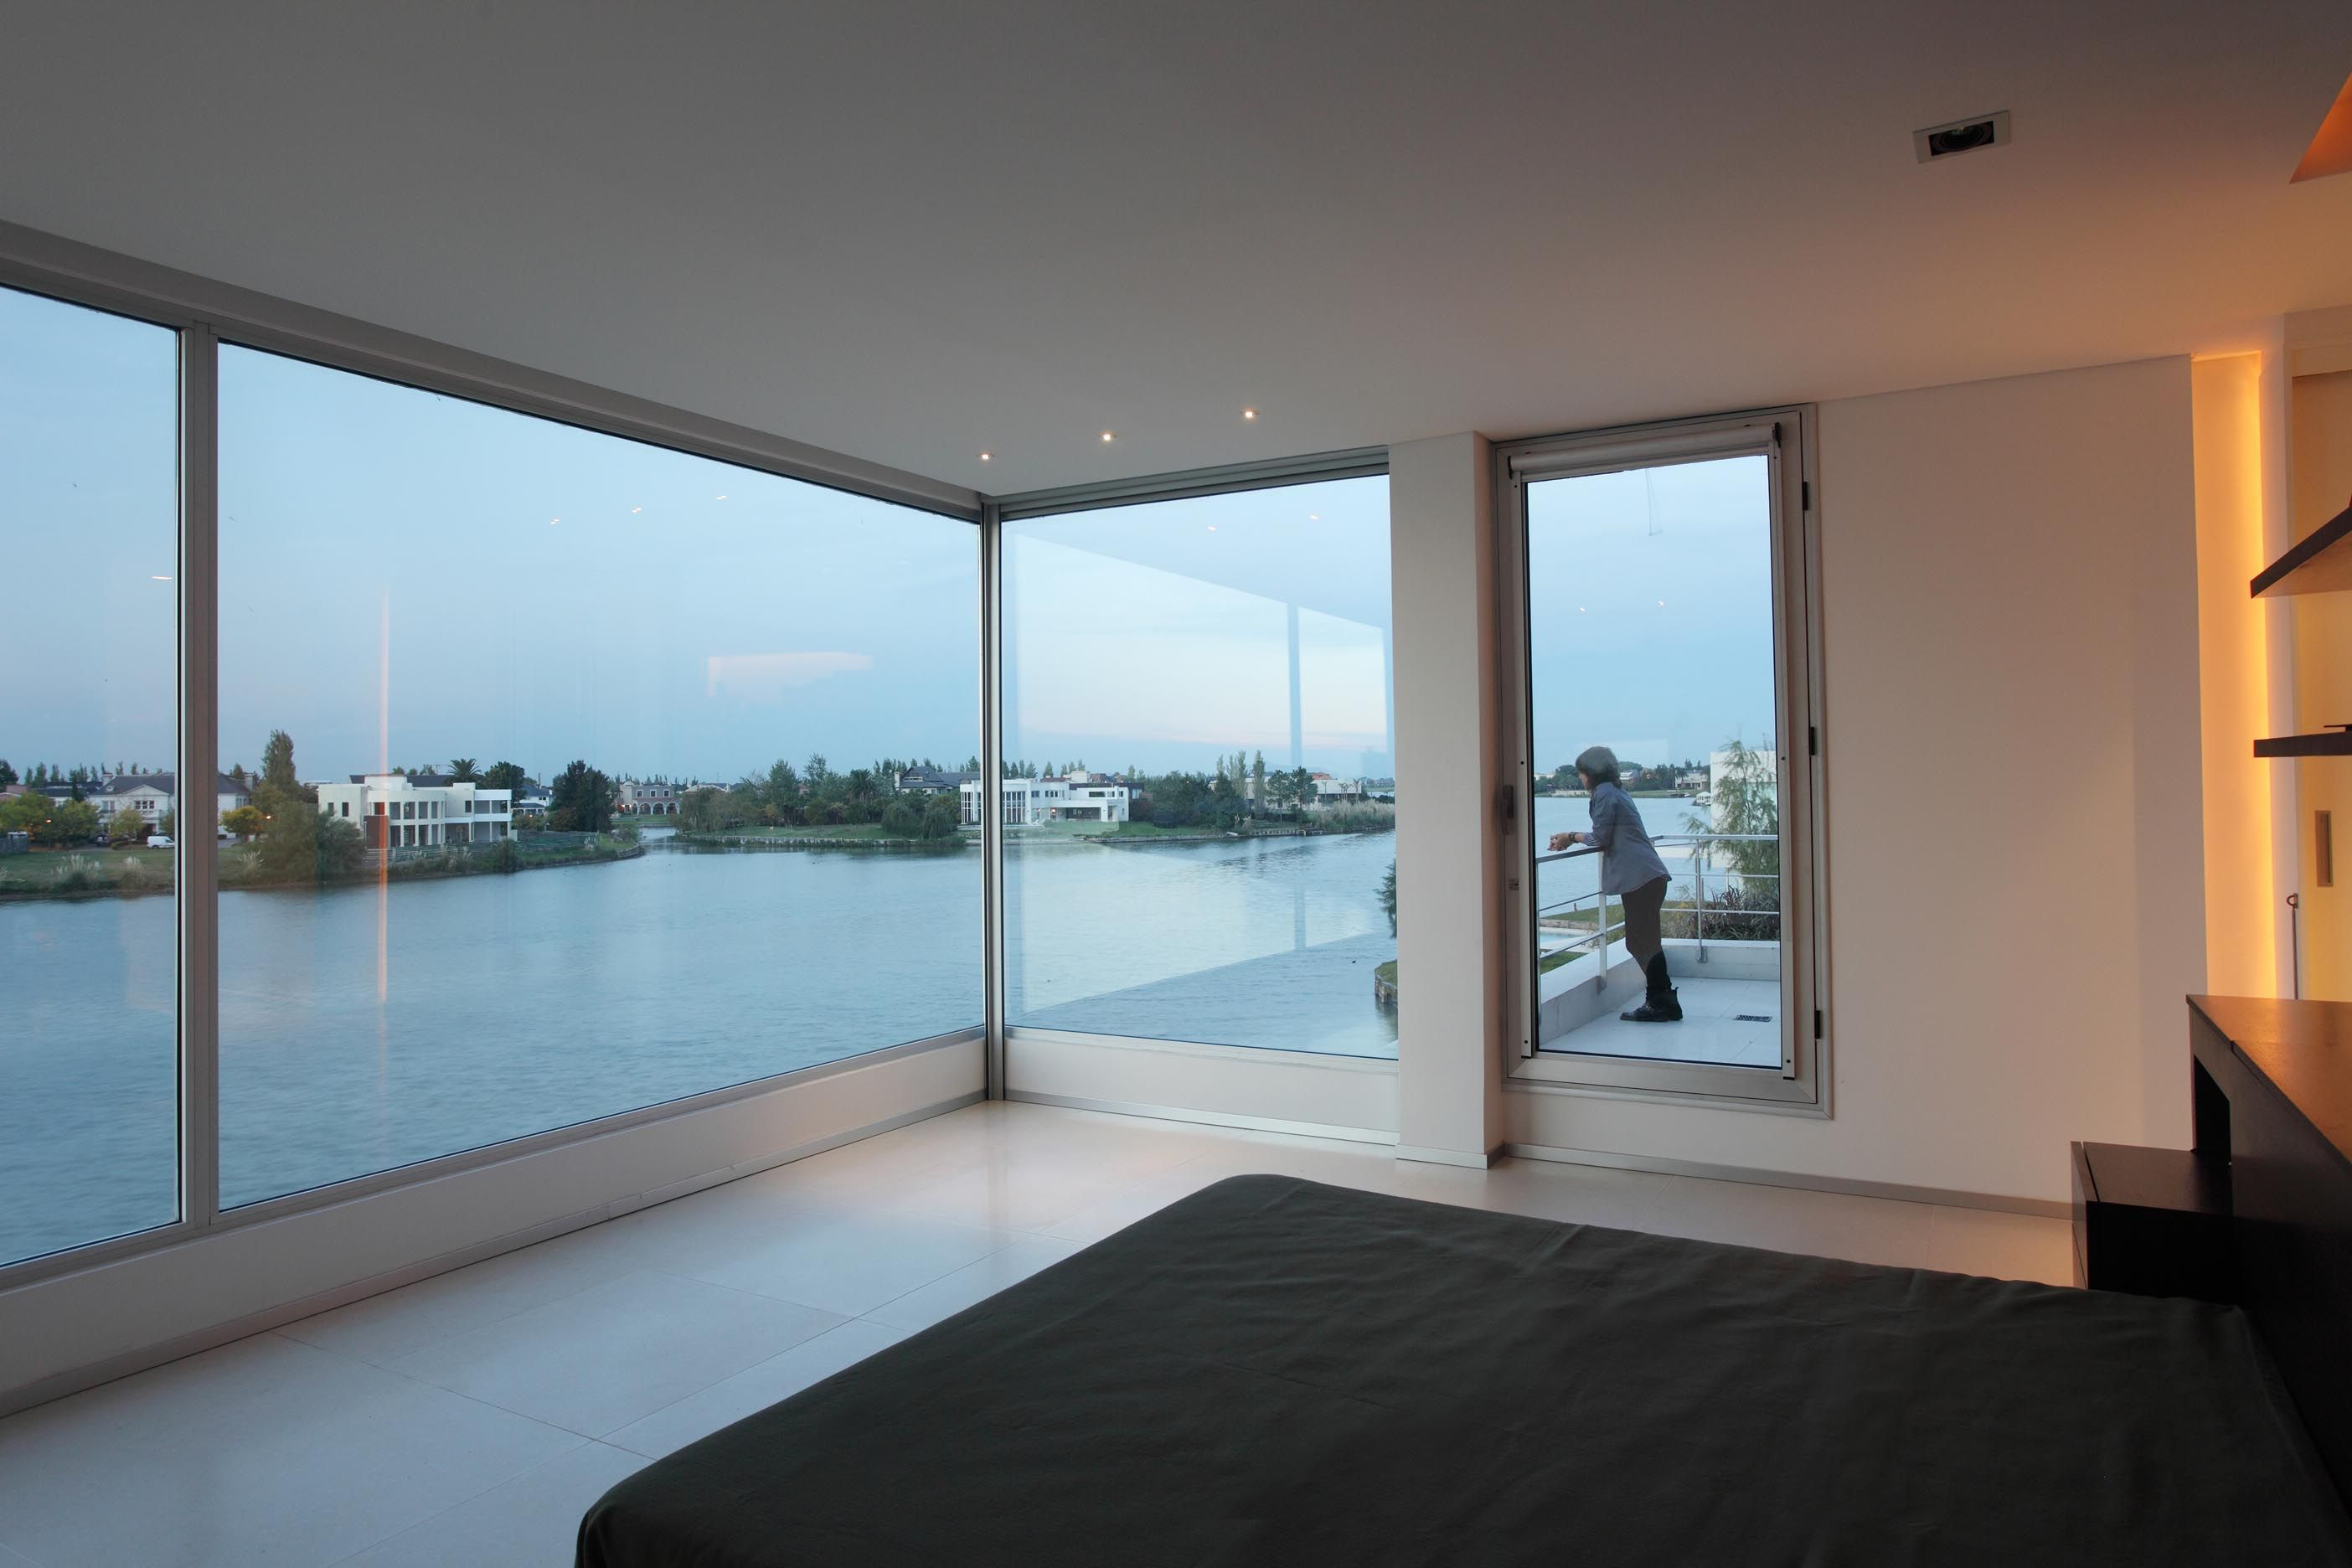 Mesmerizing Open Glass Windows From Beach House Interior House ...